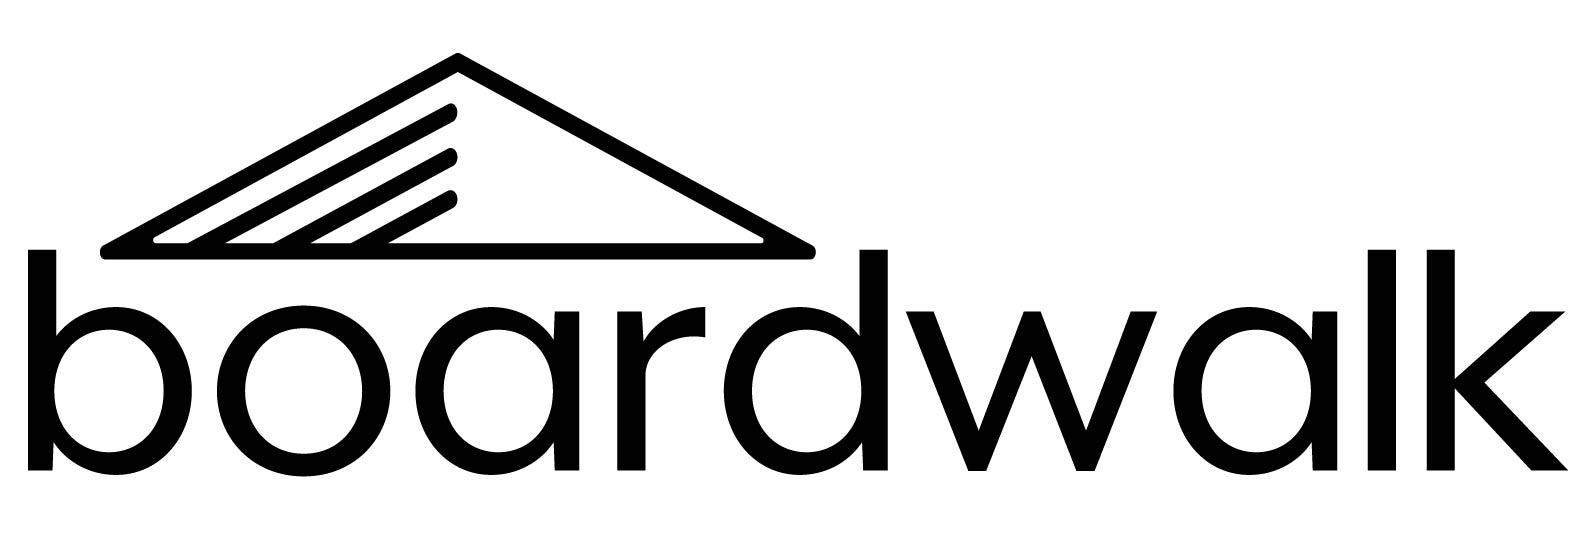 https://edmontonfolkfest.org/wp-content/uploads/Boardwalk-Corporate-Logo-Black.jpg